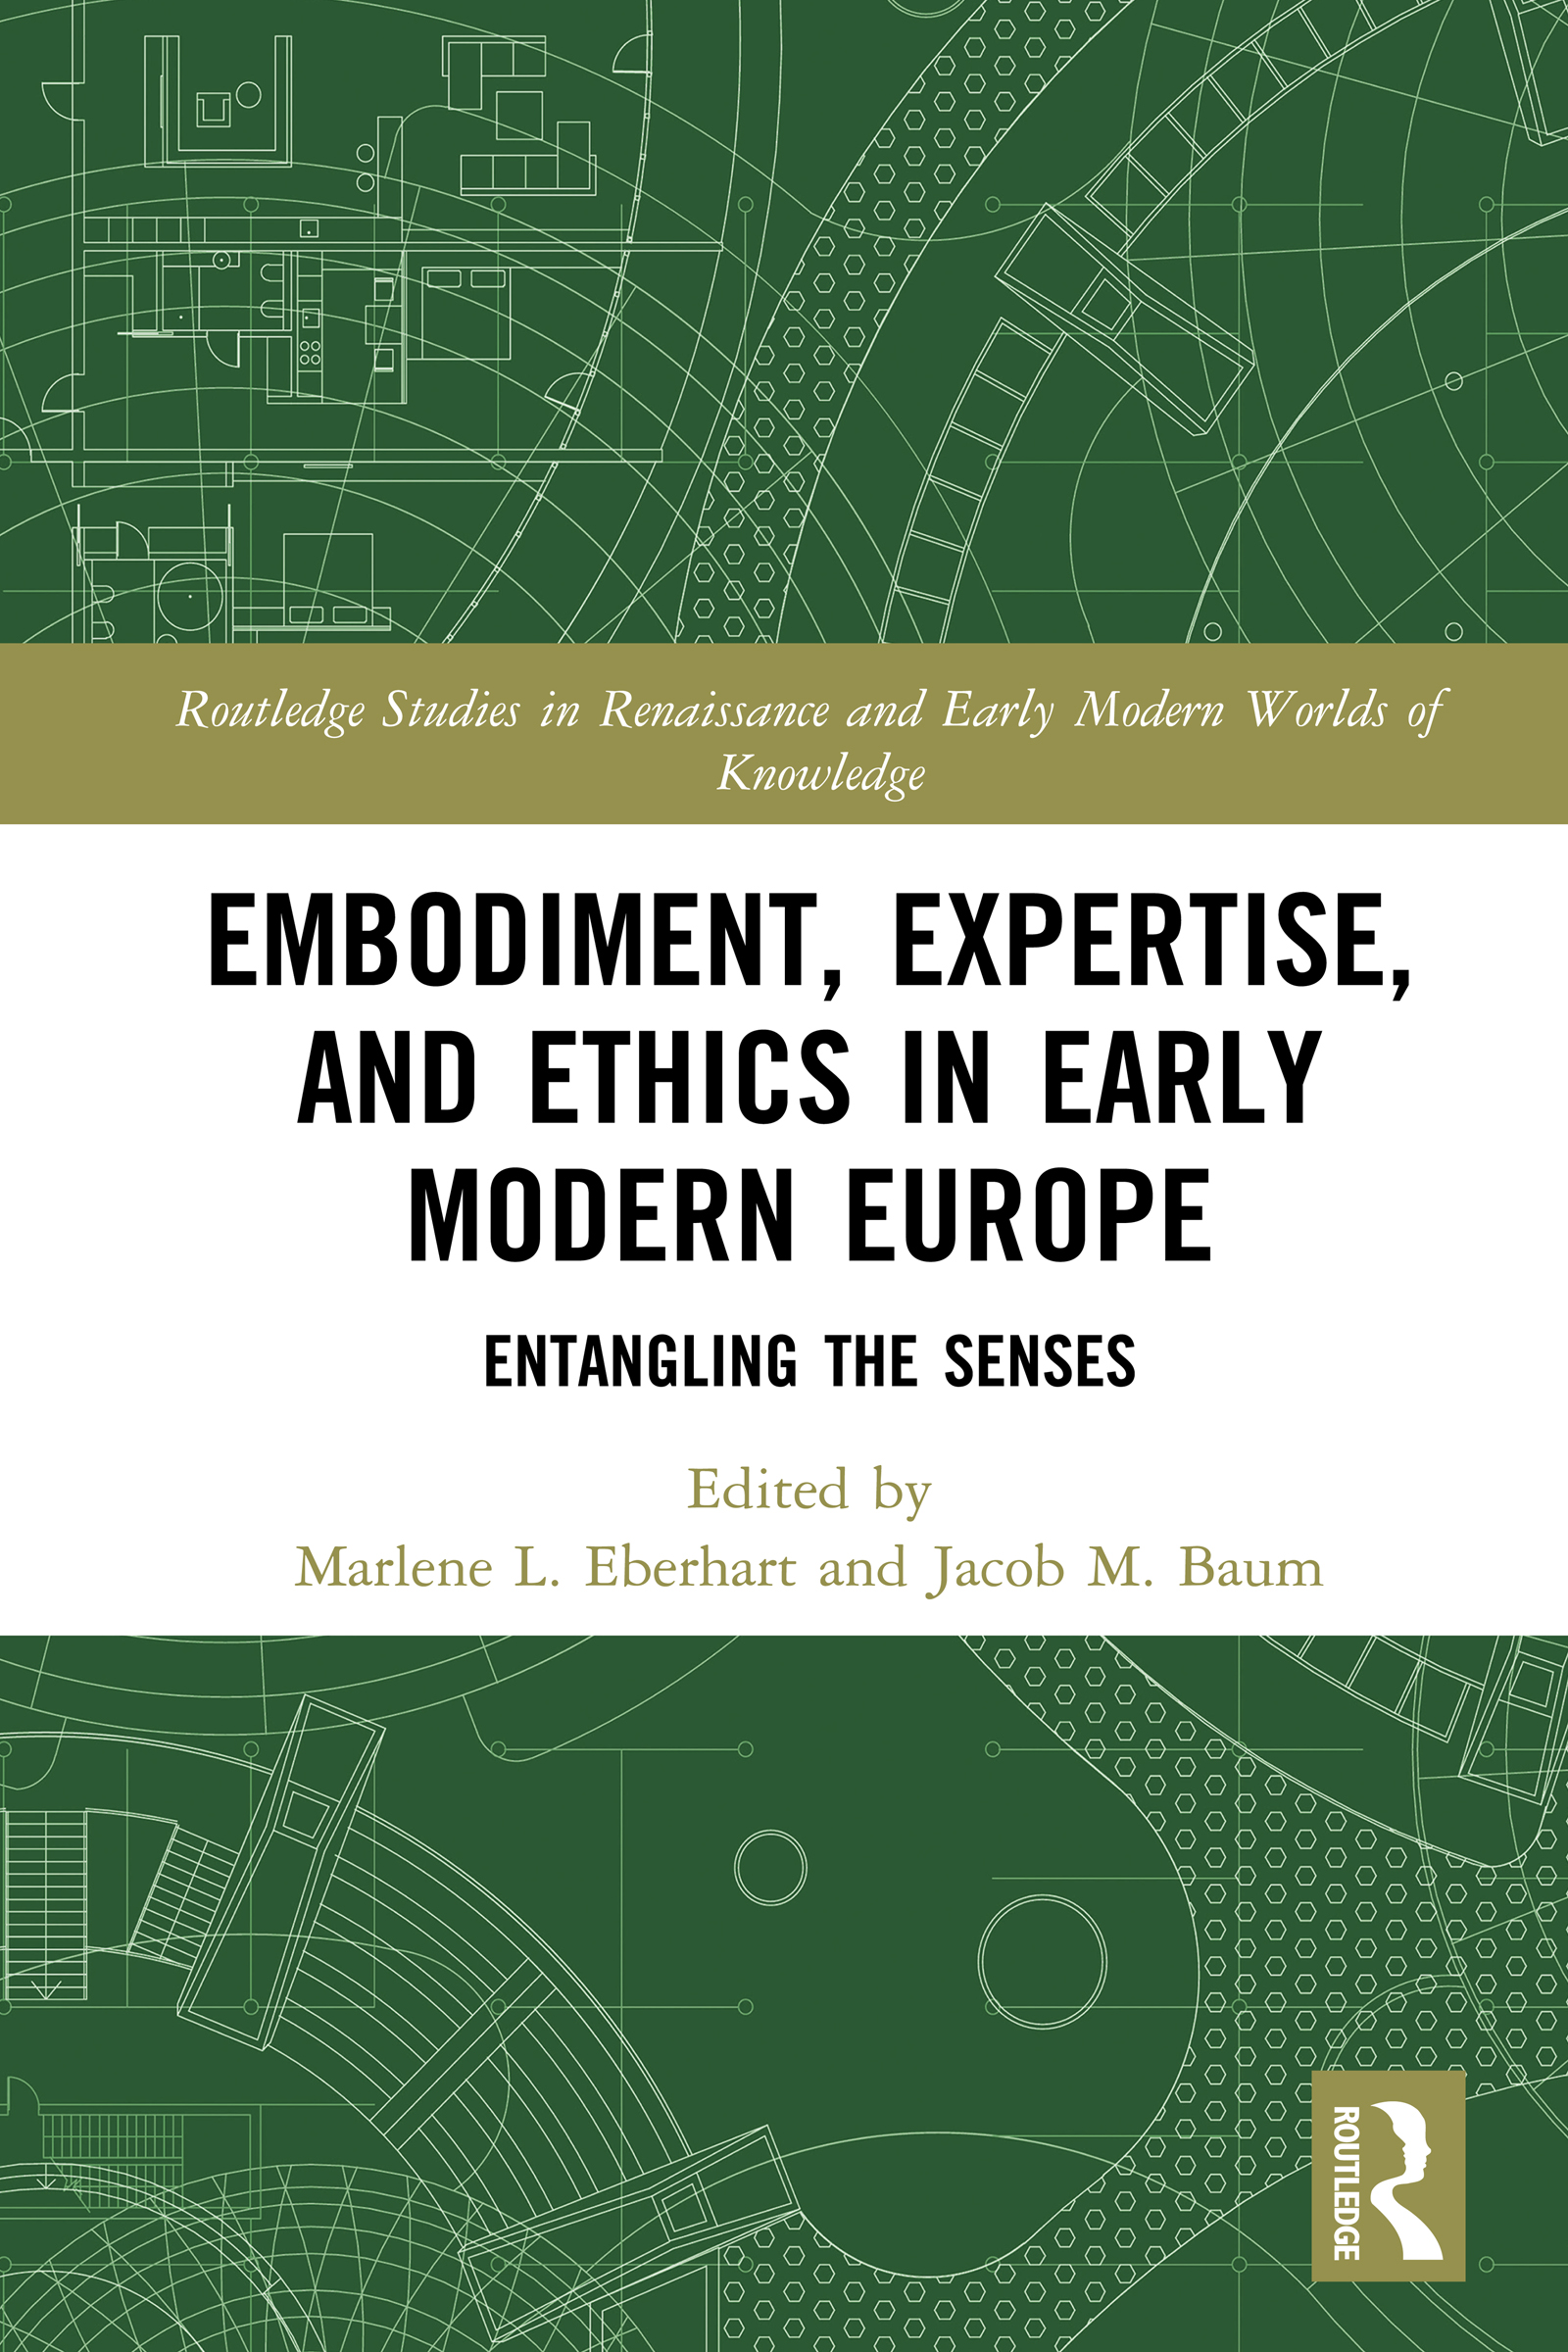 Embodiment, Expertise, and Ethics in Early Modern Europe